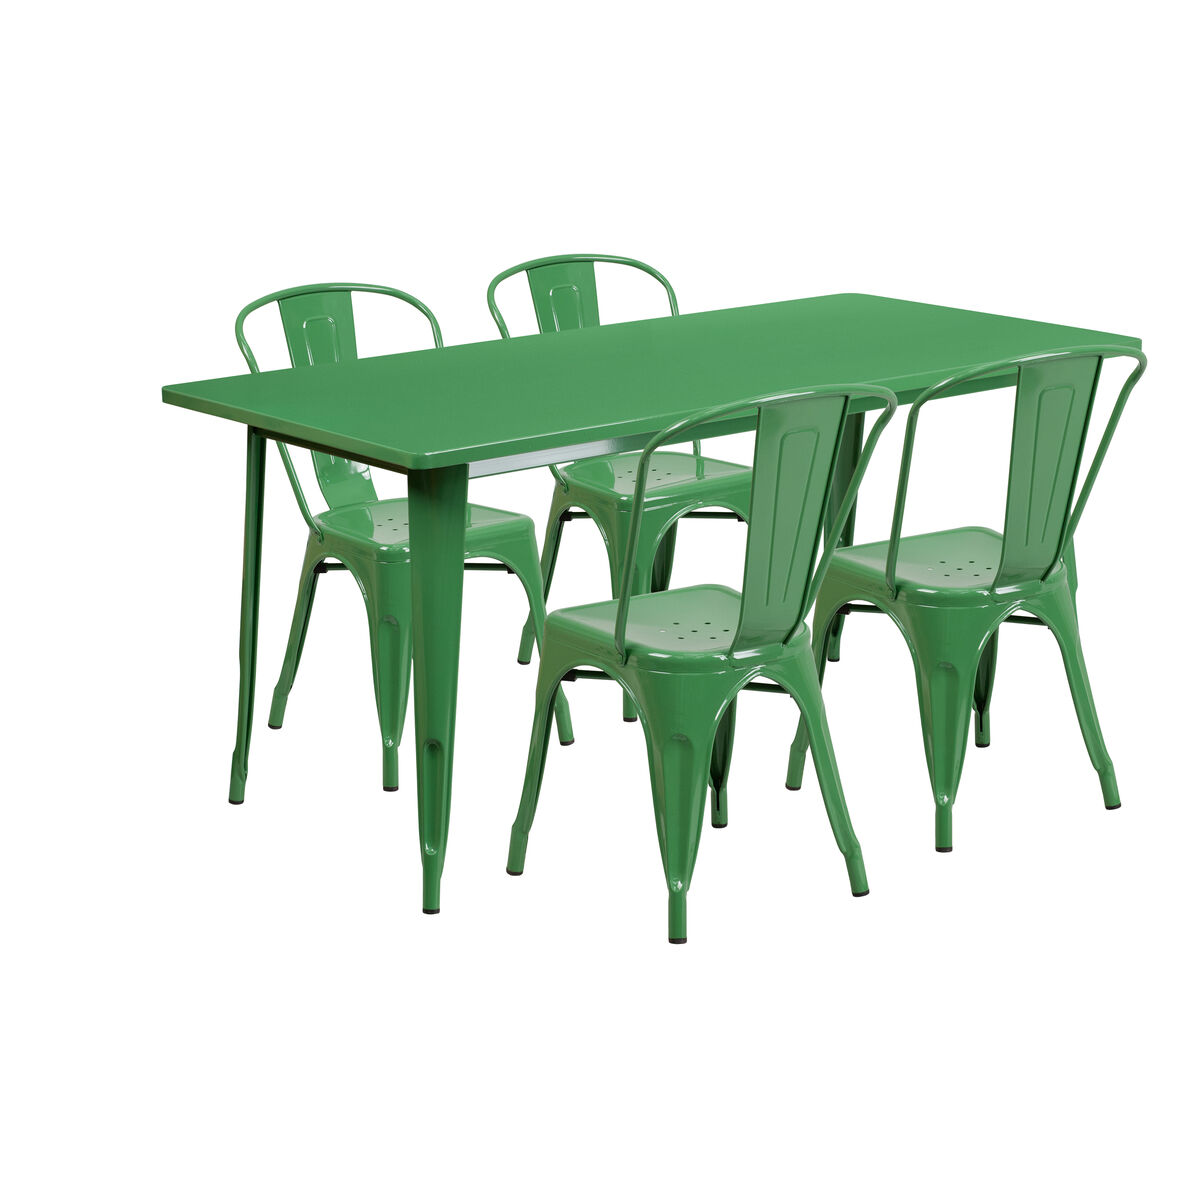 31.5x63 Green Metal Table Set ET-CT005-4-30-GN-GG ...